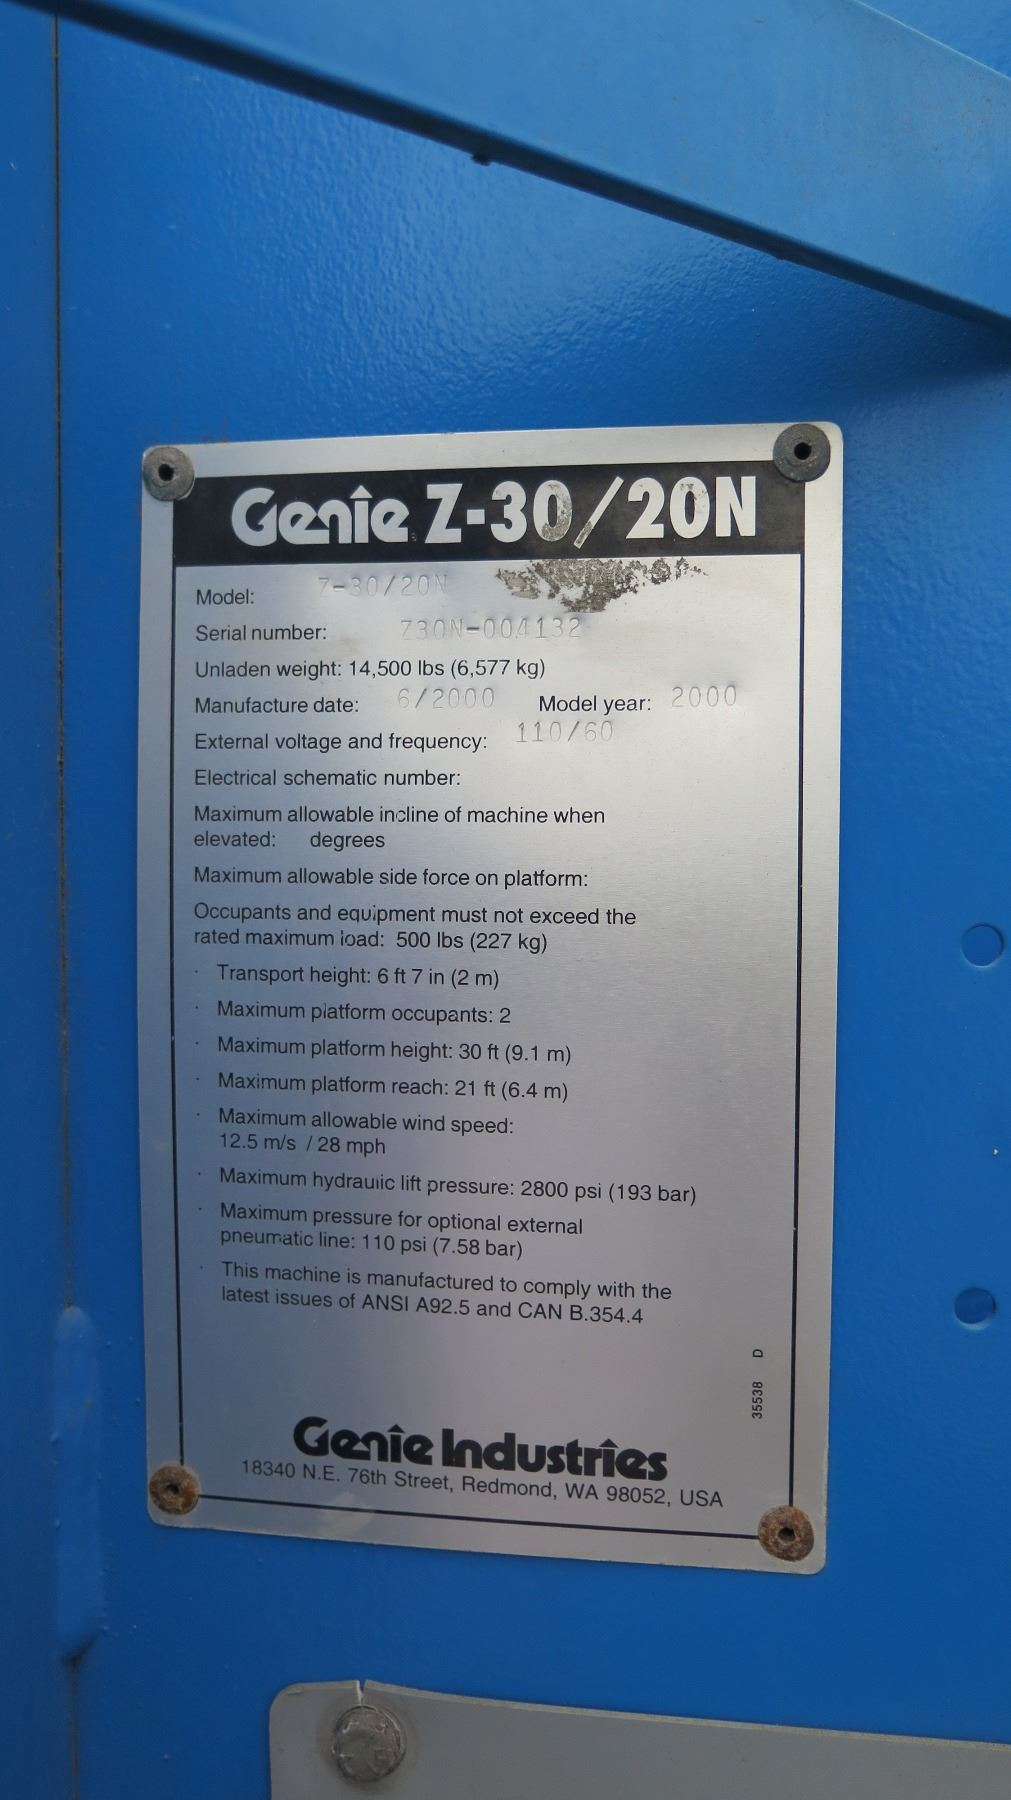 2000 Genie Z 30 20n Articulating Boom Lift Charge Doesnt Last Long Wiring Diagrams Hydraulic And Pneumatic Image 2 Doesn